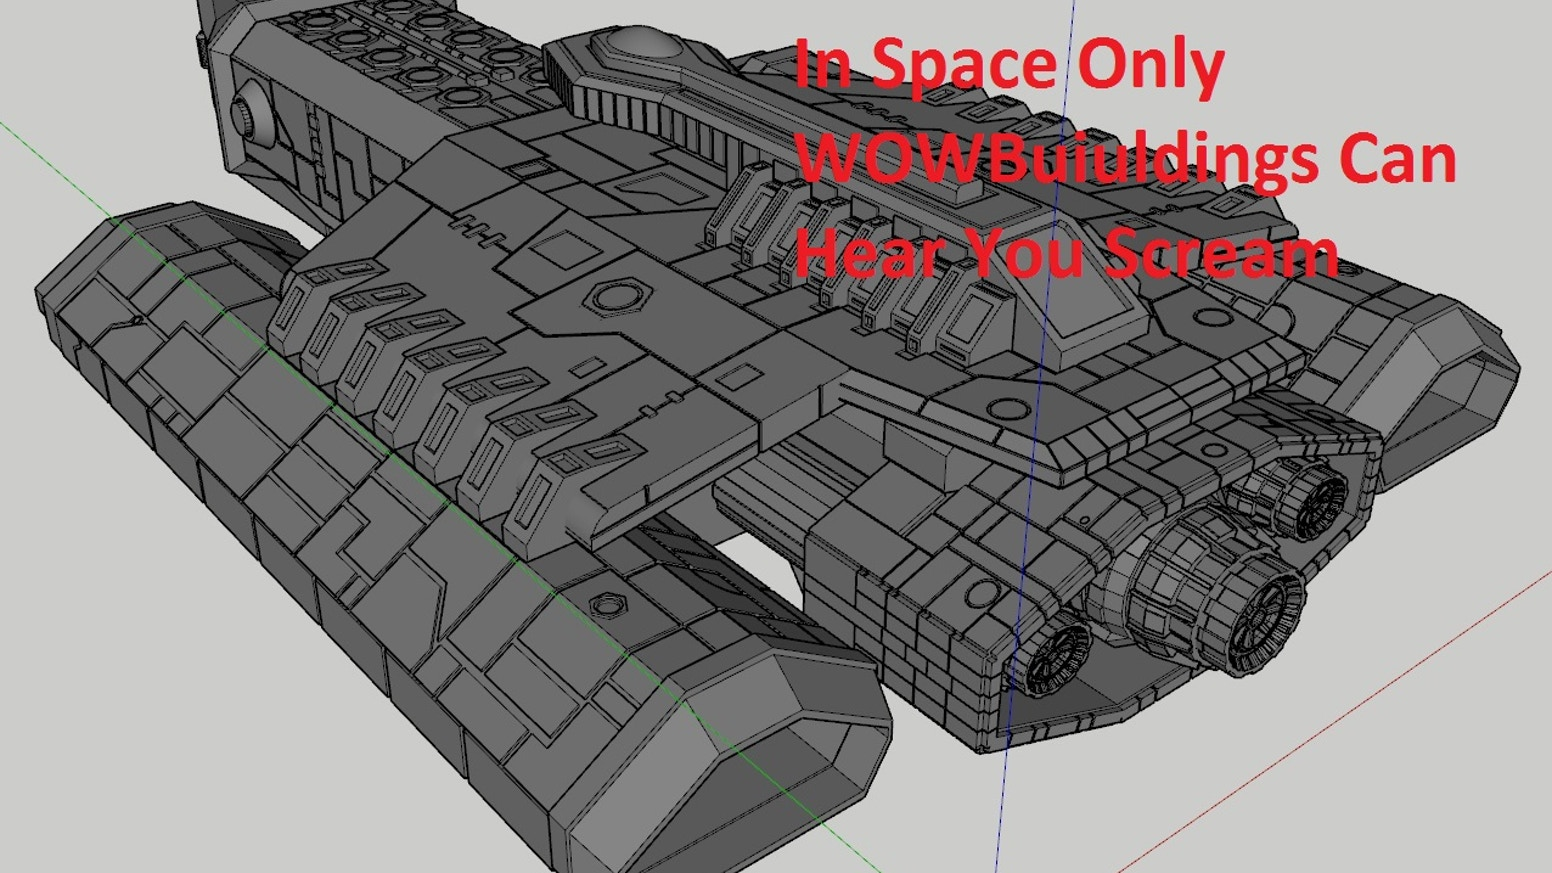 Space Battles with WOW Factor 3D print STL files by WOW Buildings